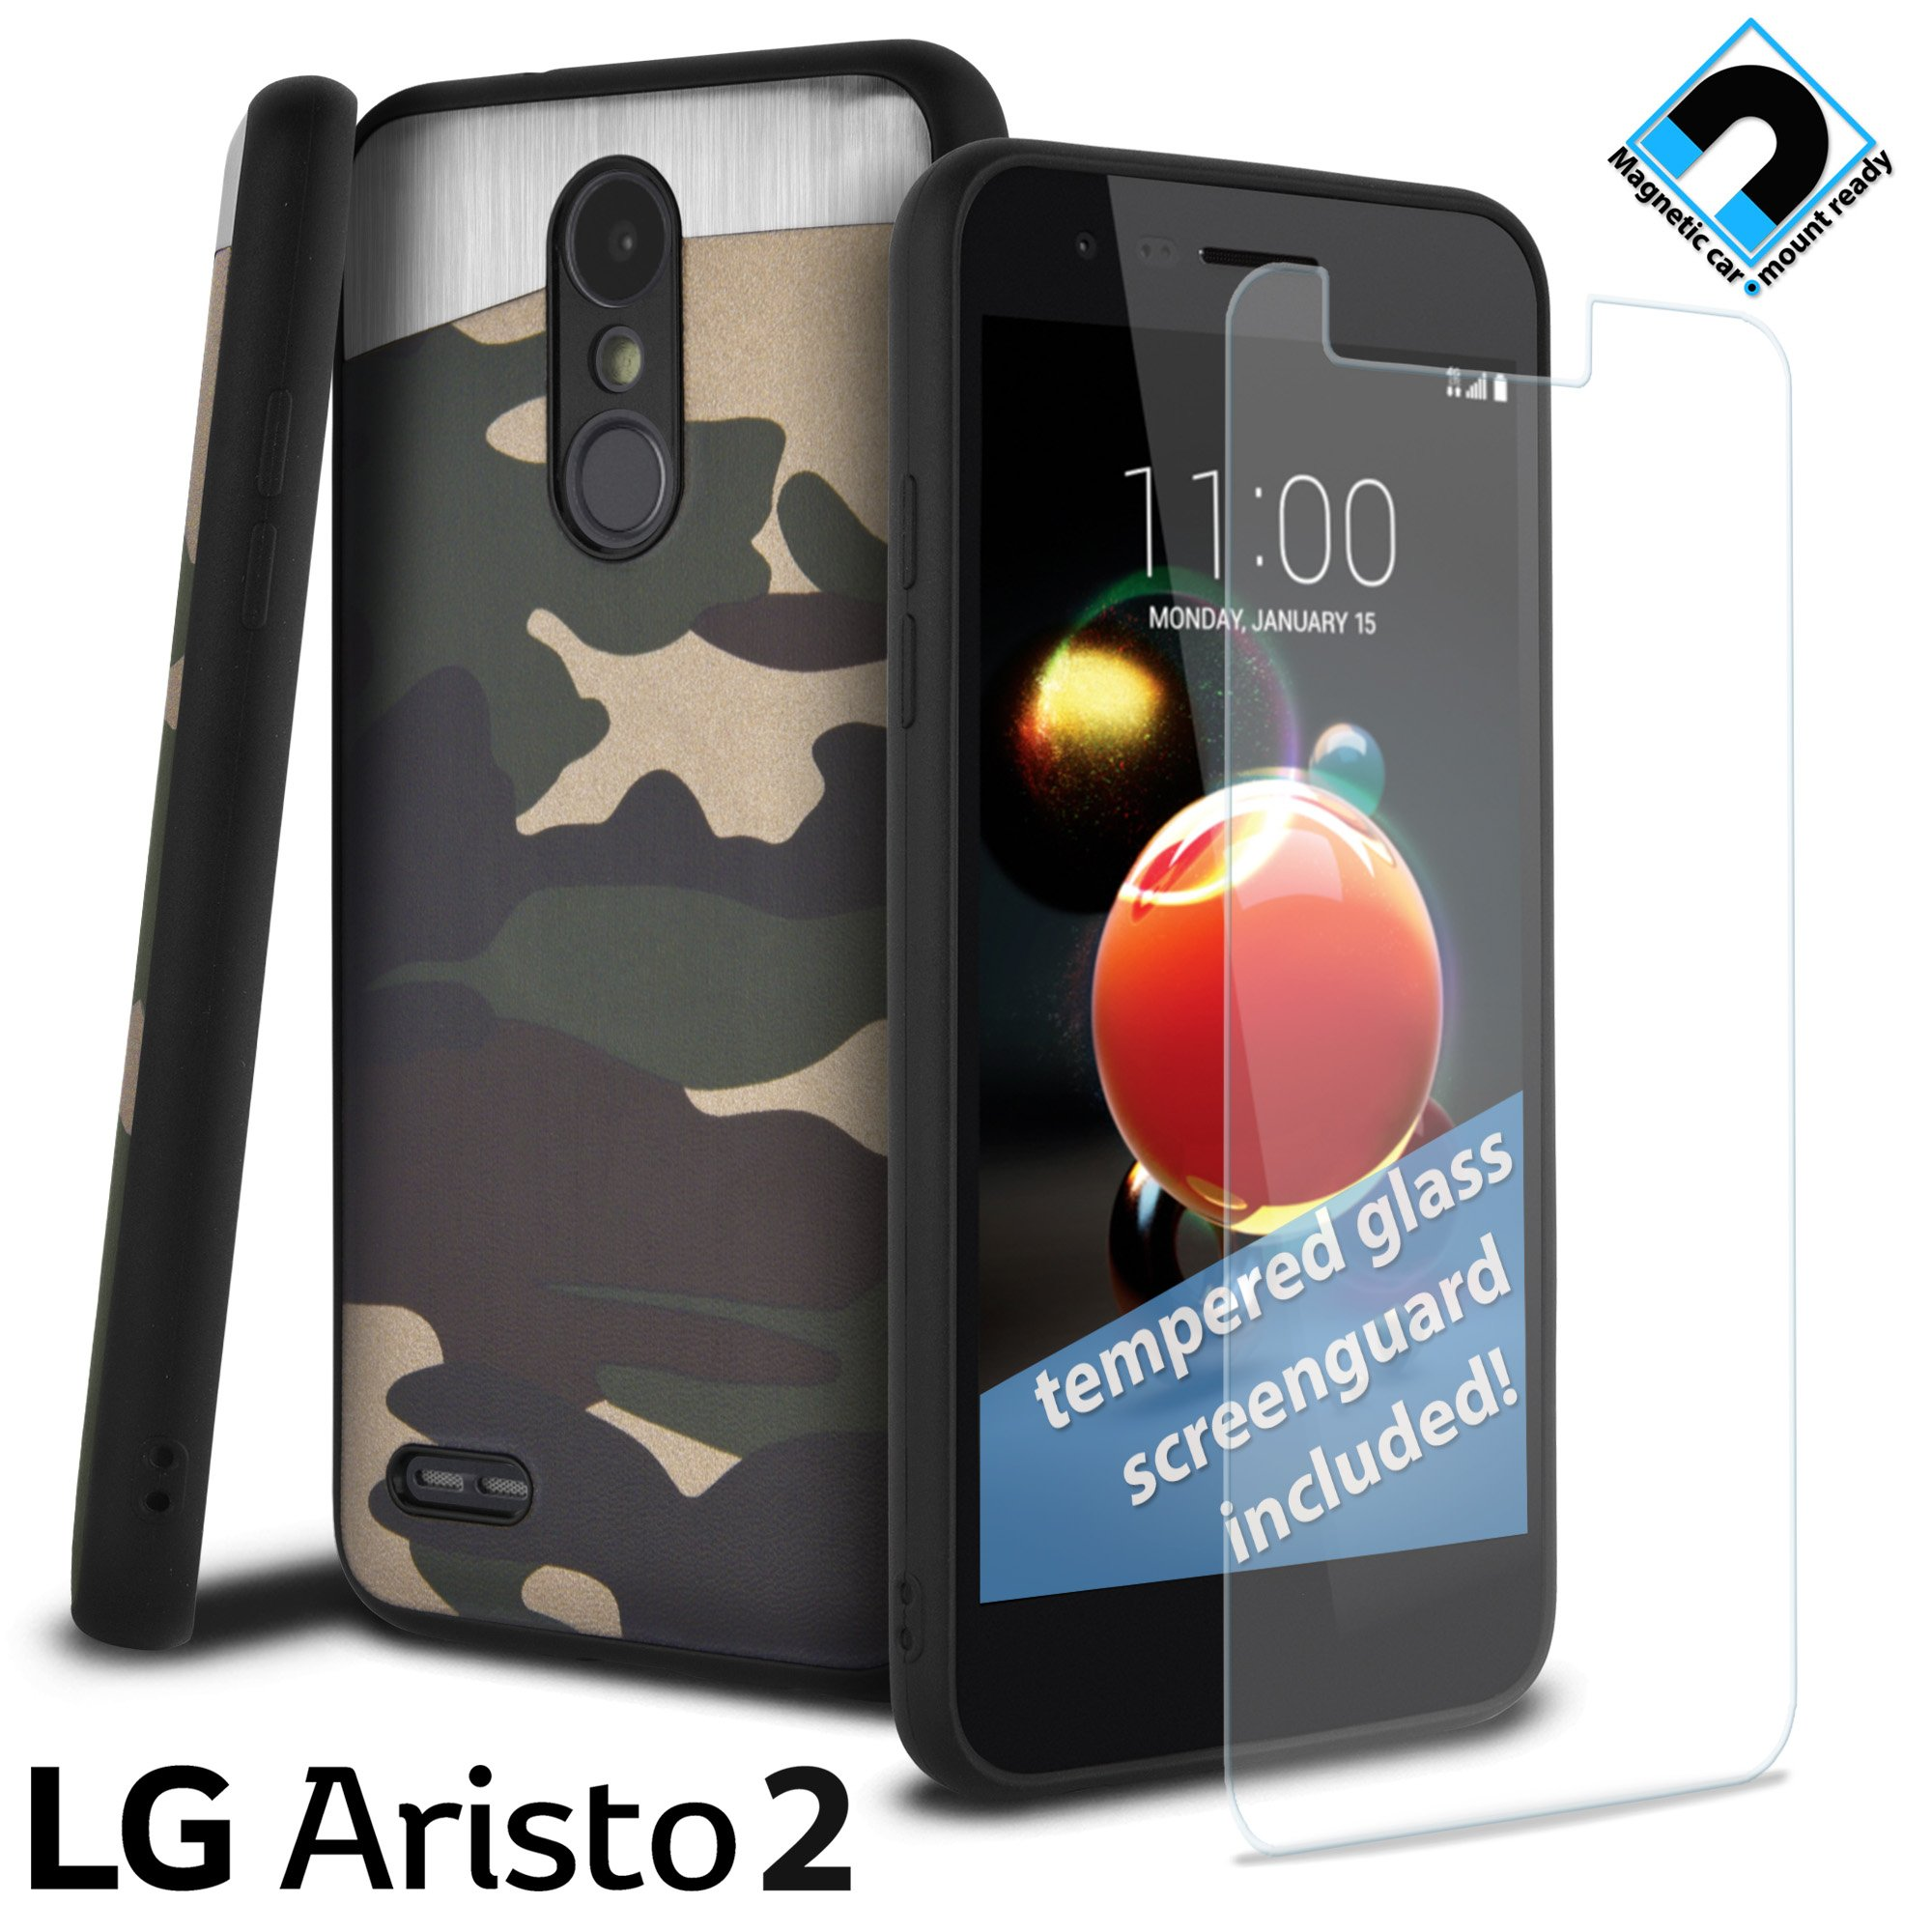 LG Aristo 2 Case, LG Tribute DYNASTY Case, LG X210, Celljoy -SLIM TPU- [Includes Tempered Glass Screen Protector] - [Magnetic Car Mount Ready] Hybrid Slim Thin Case (Blade Camo Green)